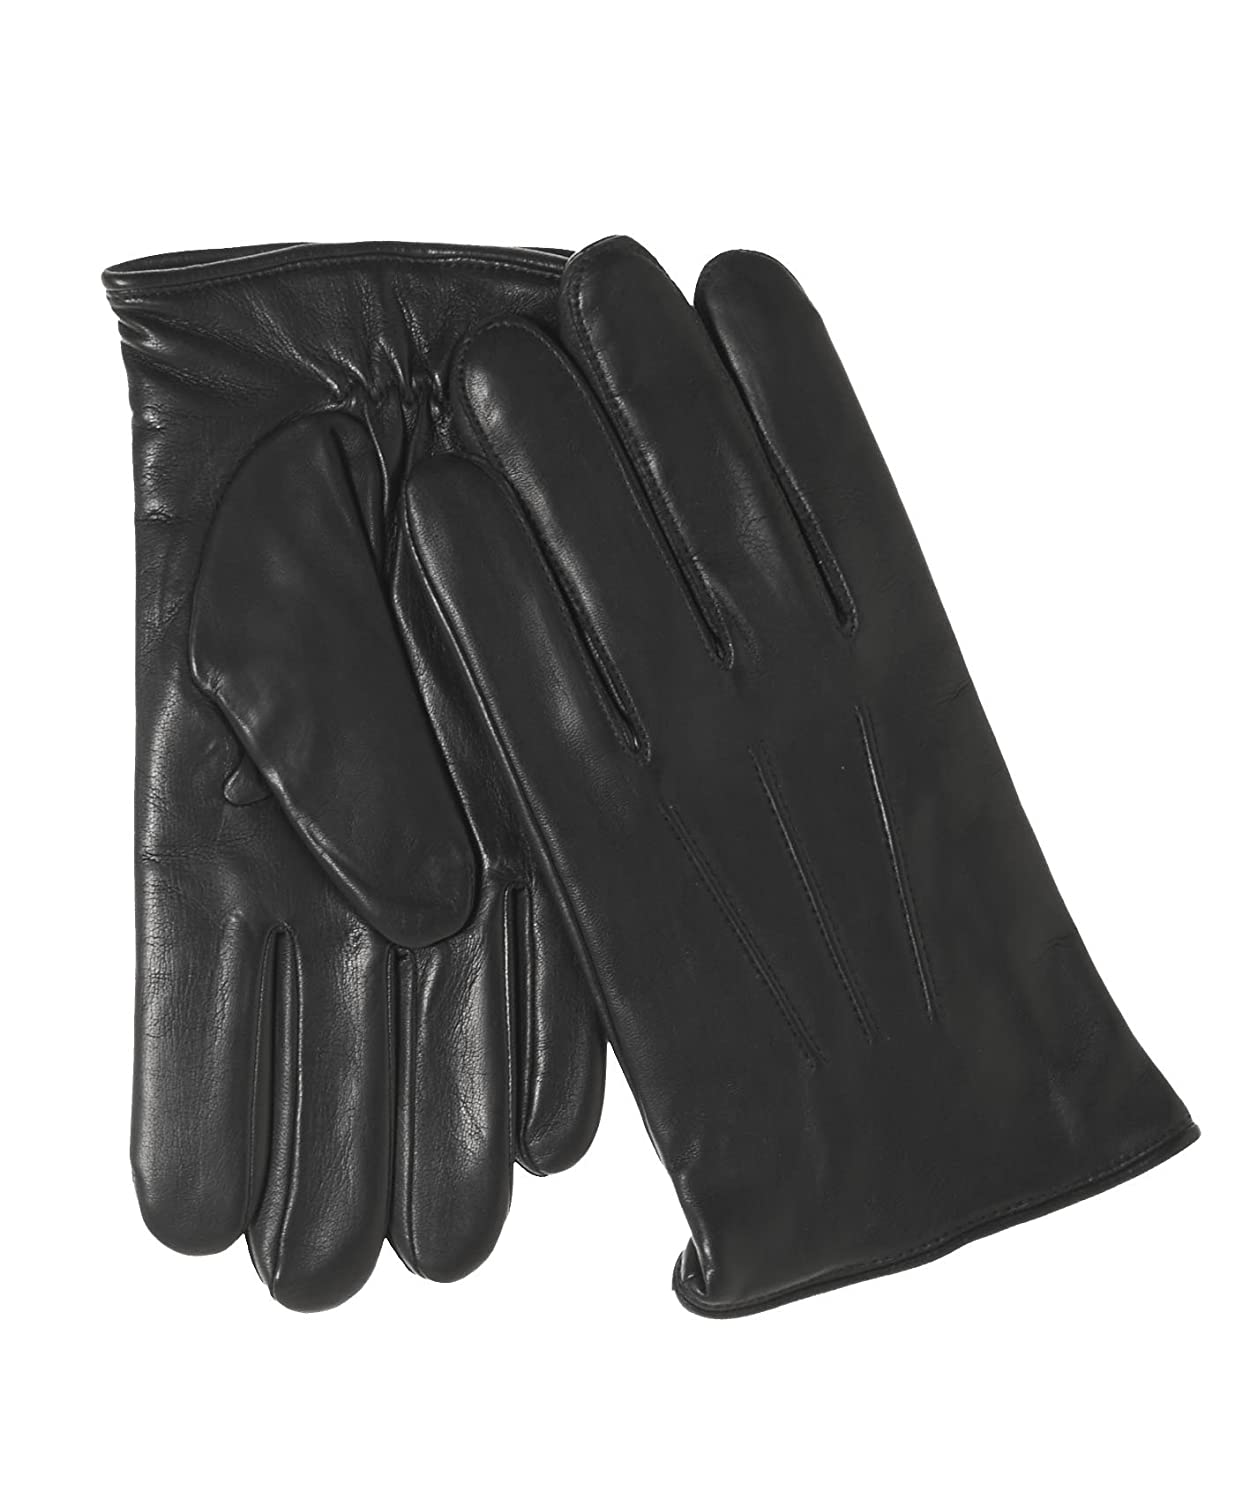 Mens leather gloves thin - Fratelli Orsini Everyday Men S Italian Lambskin Cashmere Lined Winter Leather Gloves Size S Color Black At Amazon Men S Clothing Store Cold Weather Gloves